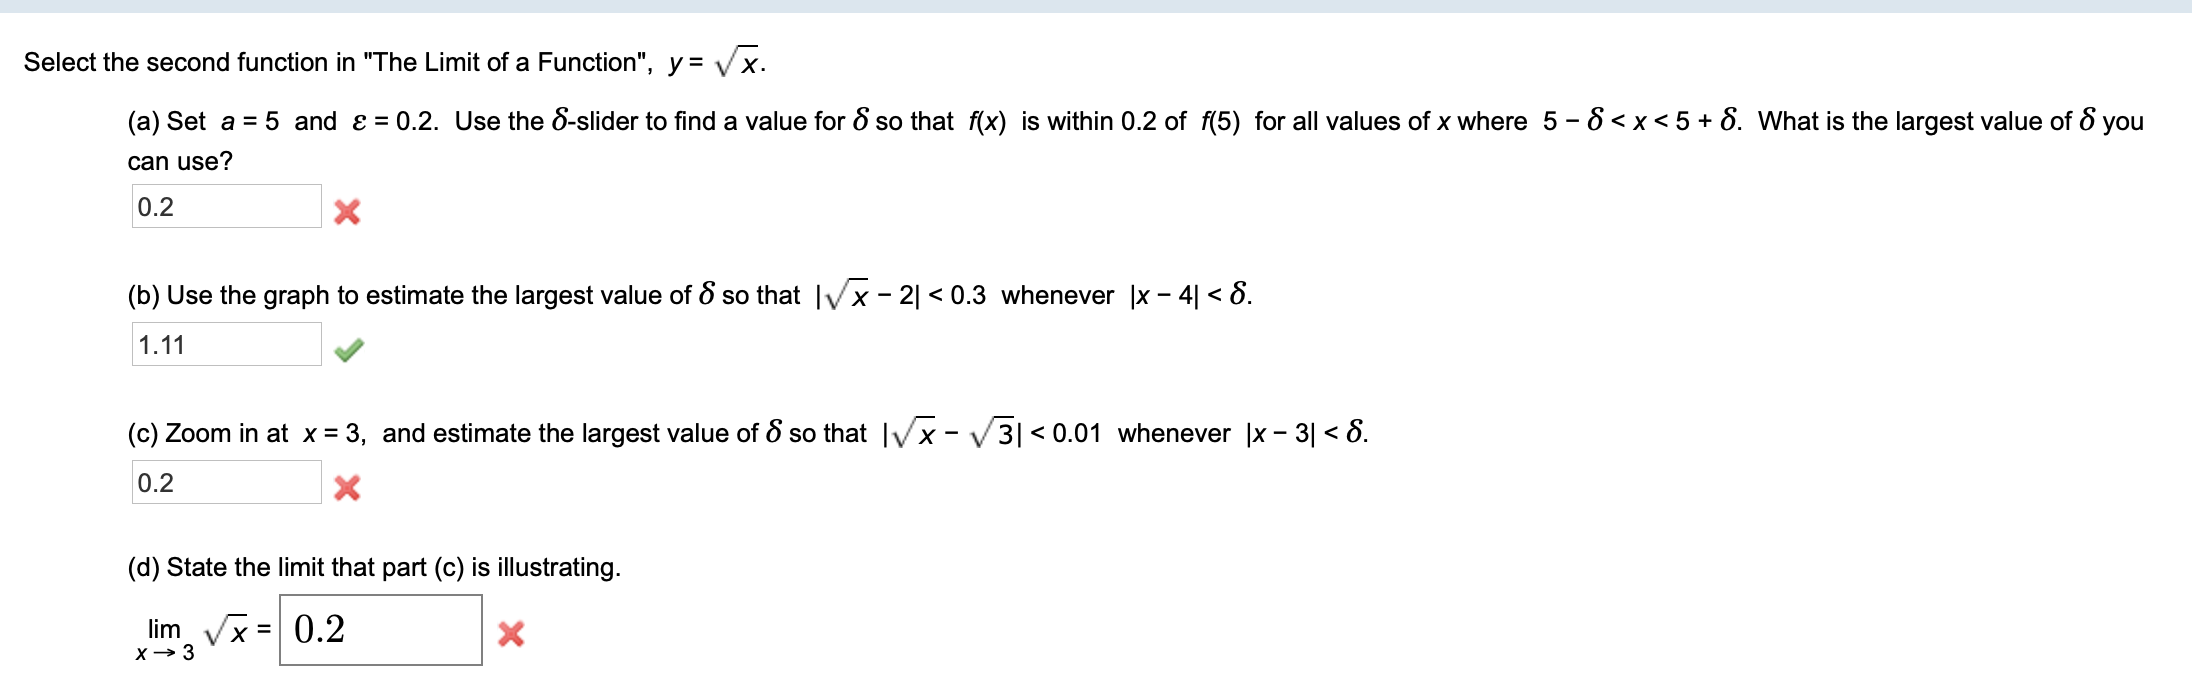 """Select the second function in """"The Limit of a Function"""", y = Vx 0.2. Use the 8-slider to find a value for 8 so that f(x) is within 0.2 of f(5) for all values of x where 5 - 8 <x<5+ 8. What is the largest value of 8 you (a) Set a 5 and e can use? 0.2 X (b) Use the graph to estimate the largest value of S so that Ix- 21 < 0.3 whenever  x - 4 < 8 1.11 (c) Zoom in at x = 3, and estimate the largest value of 8 so that x -3  < 0.01 whenever x - 3 <8. 0.2 (d) State the limit that part (c) is illustrating limVx0.2 = x3"""